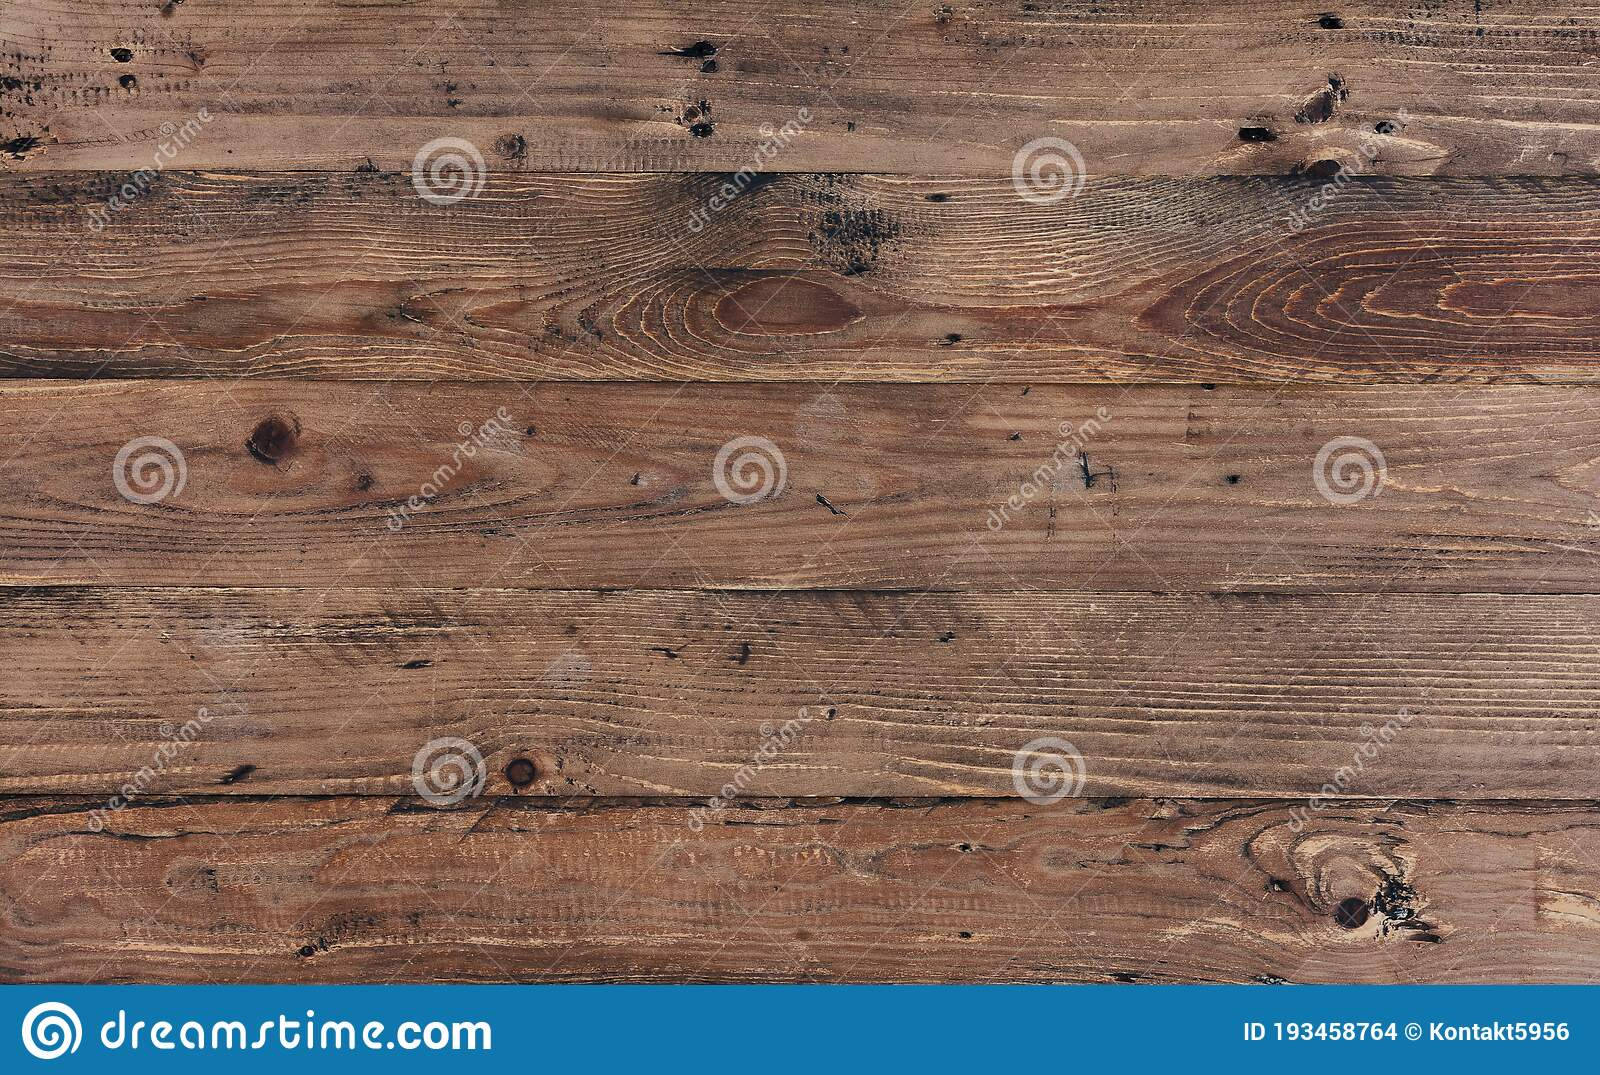 Rustic Wooden Wall Made From Old Wooden Boards Stock Photo Image Of Aged Background 193458764